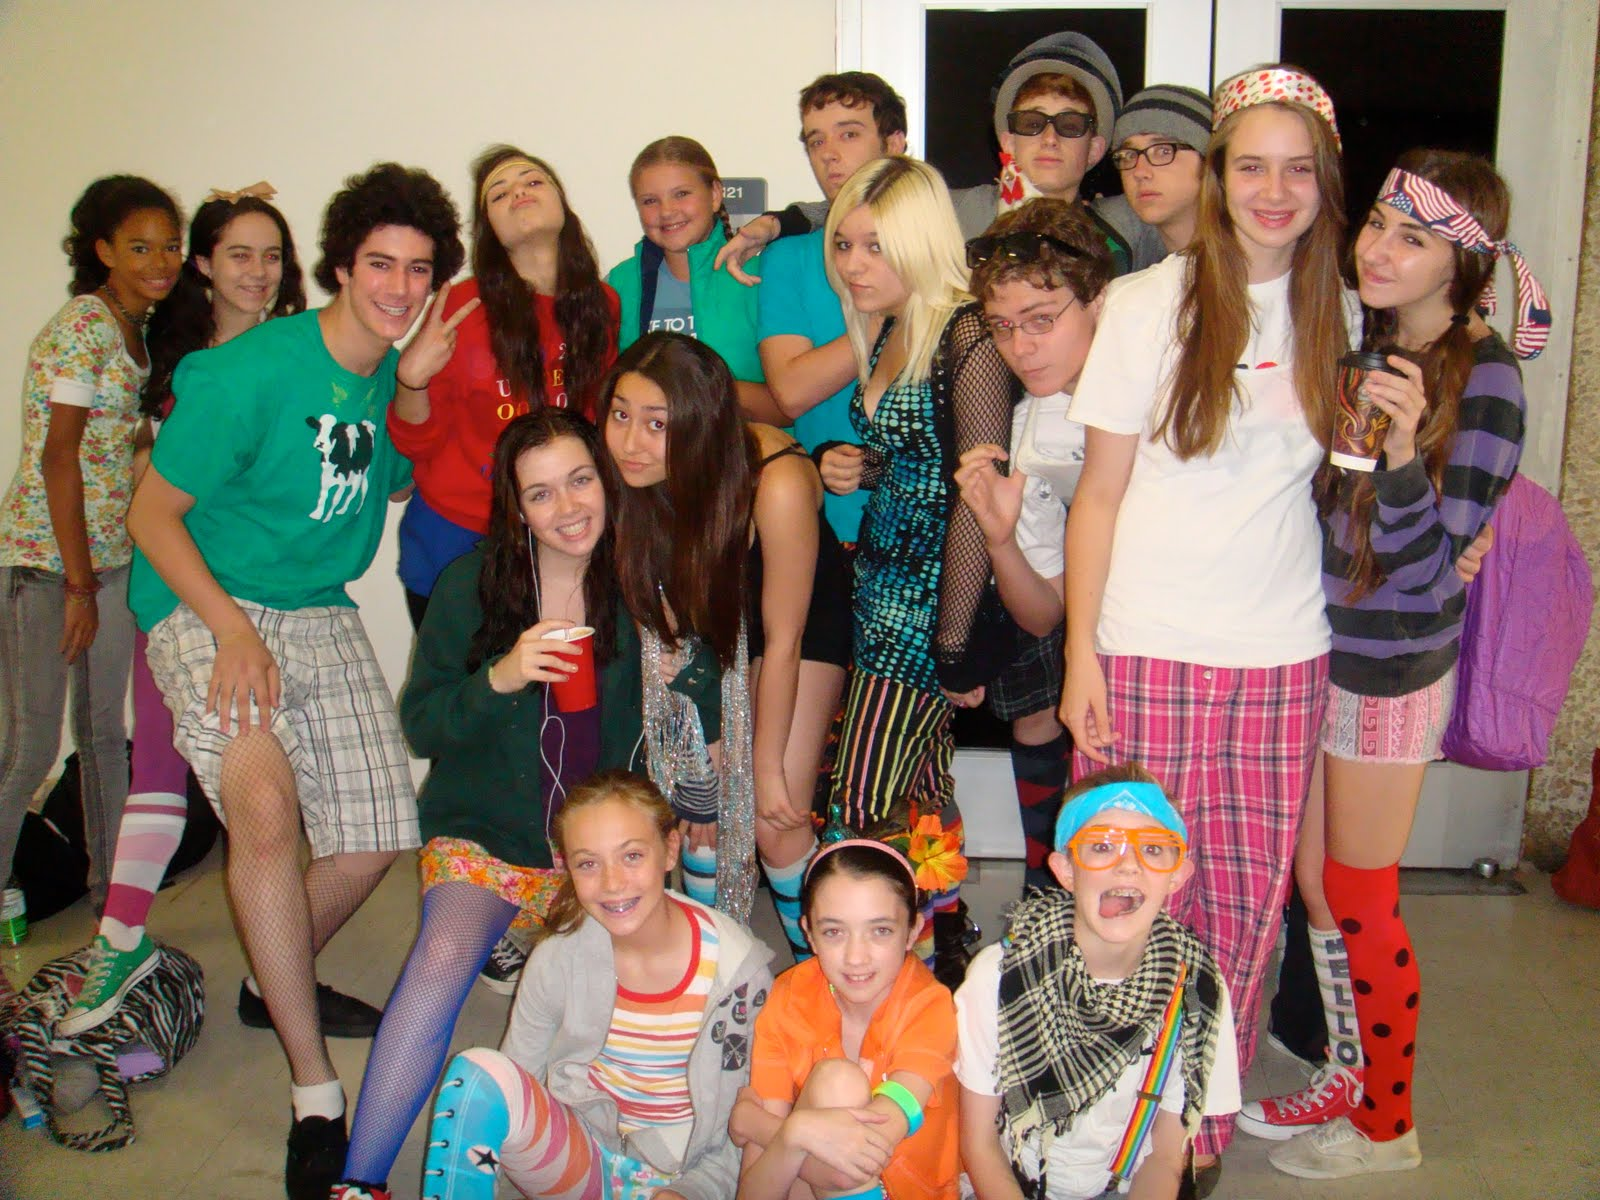 Tacky Day Ideas http://tadwbackstage.blogspot.com/2010/07/wacky-tacky-dress-up-day-at-tadw.html